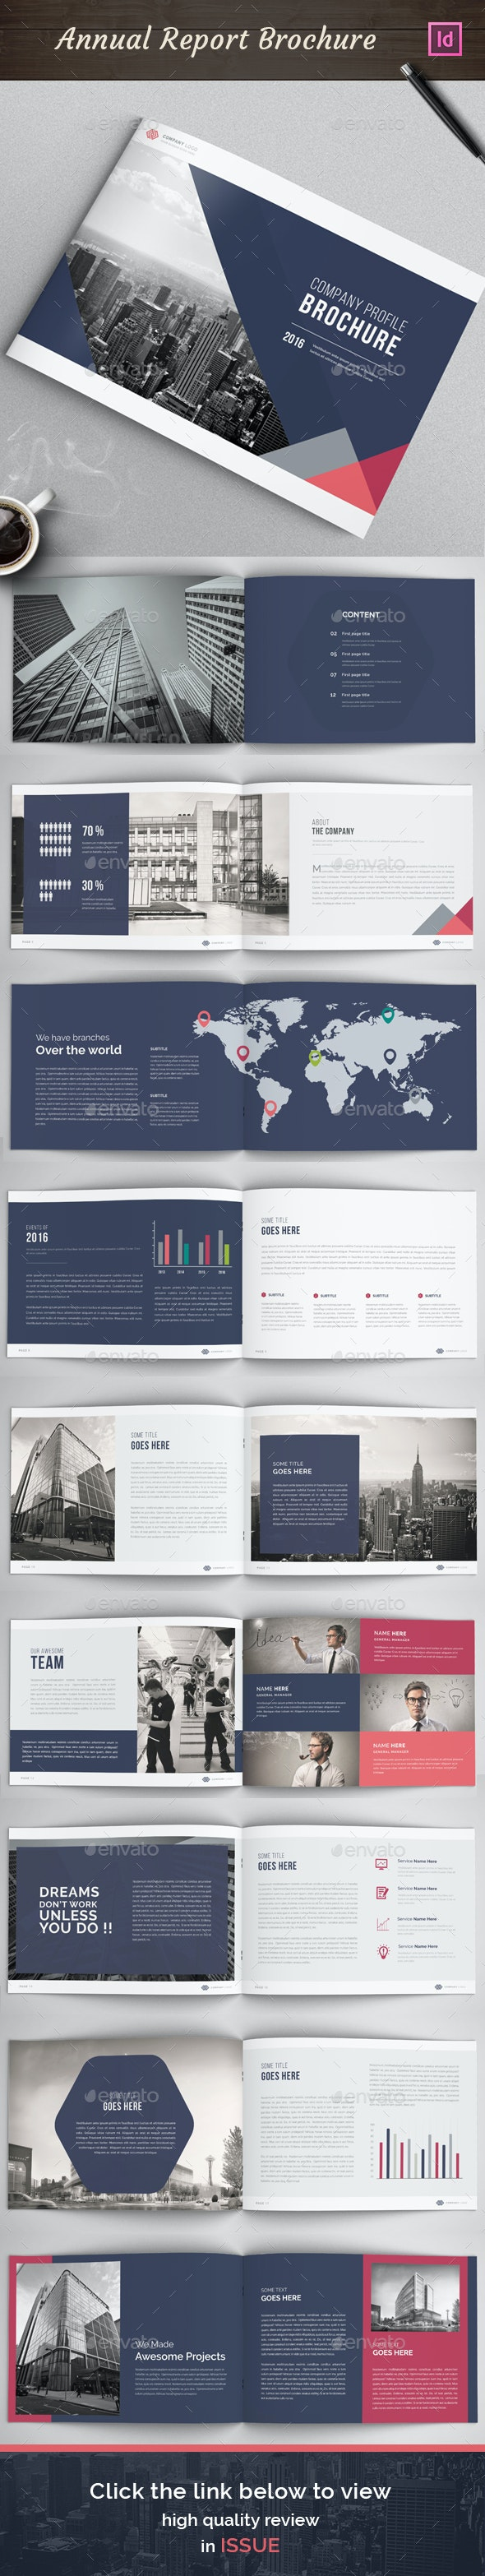 Annual Report Brochure 03 - Corporate Brochures